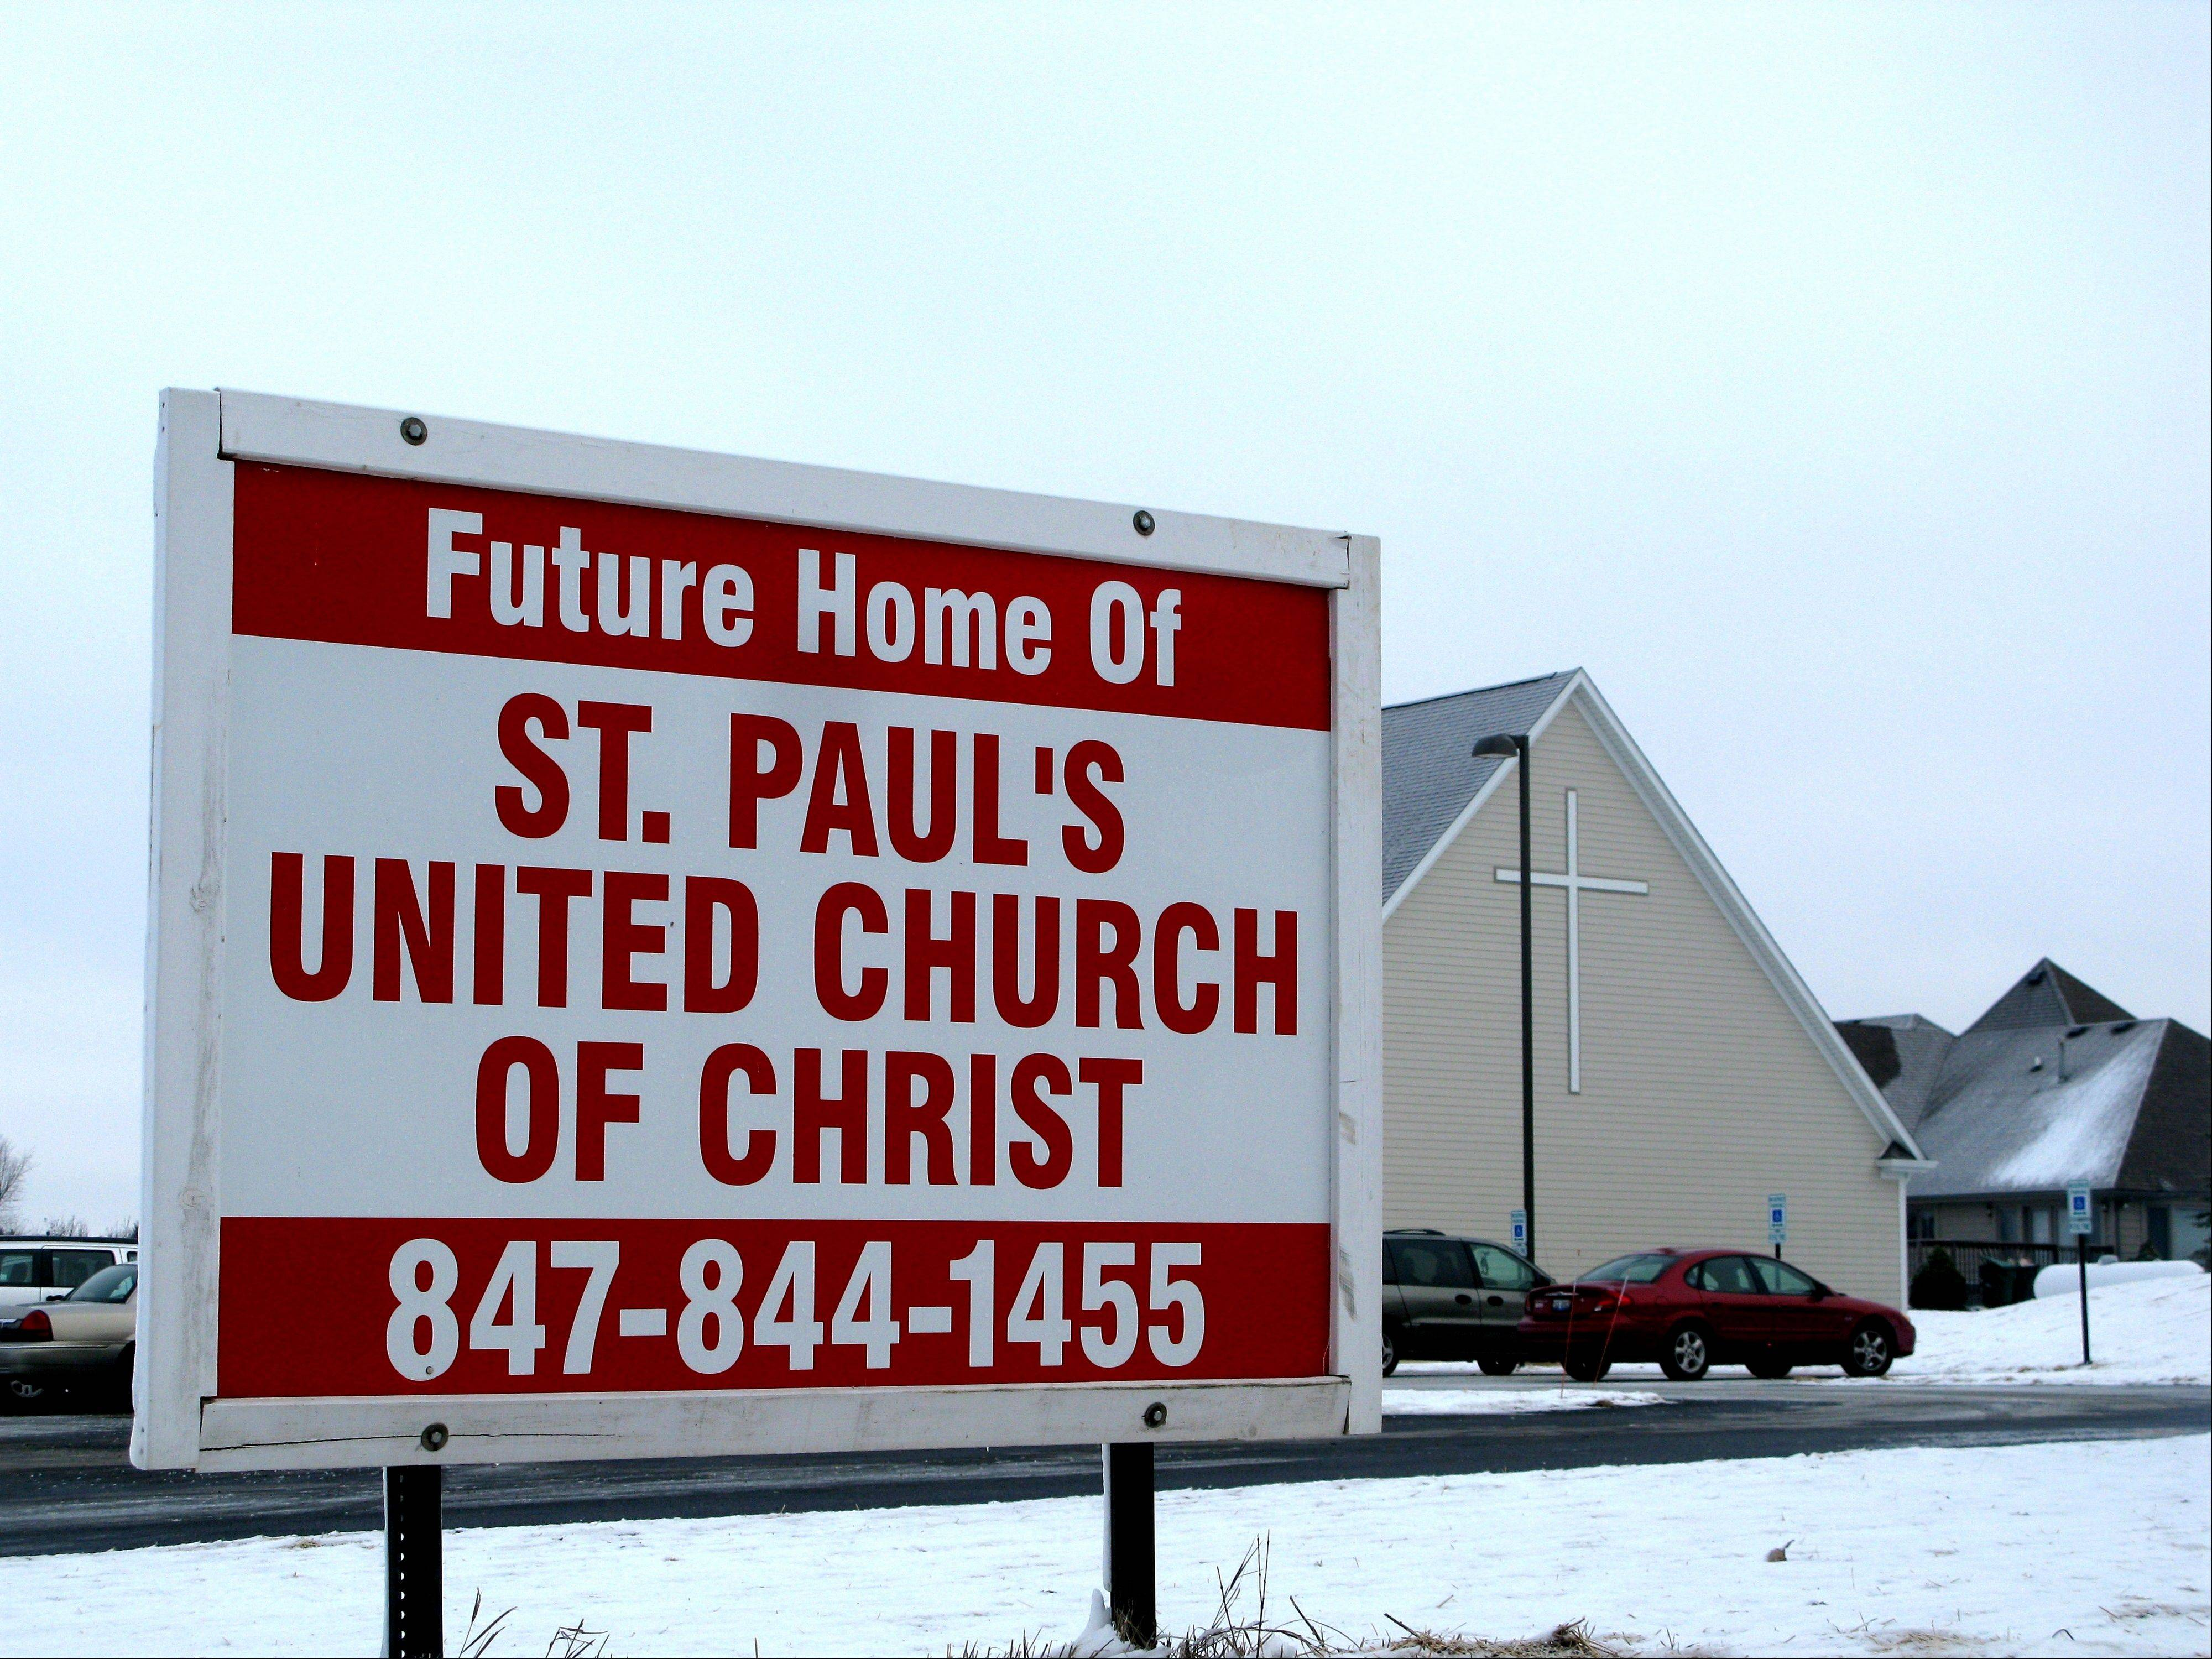 The future became the present for the St. Paul's United Church of Christ community as worshippers celebrated their first service in their new church Sunday morning.